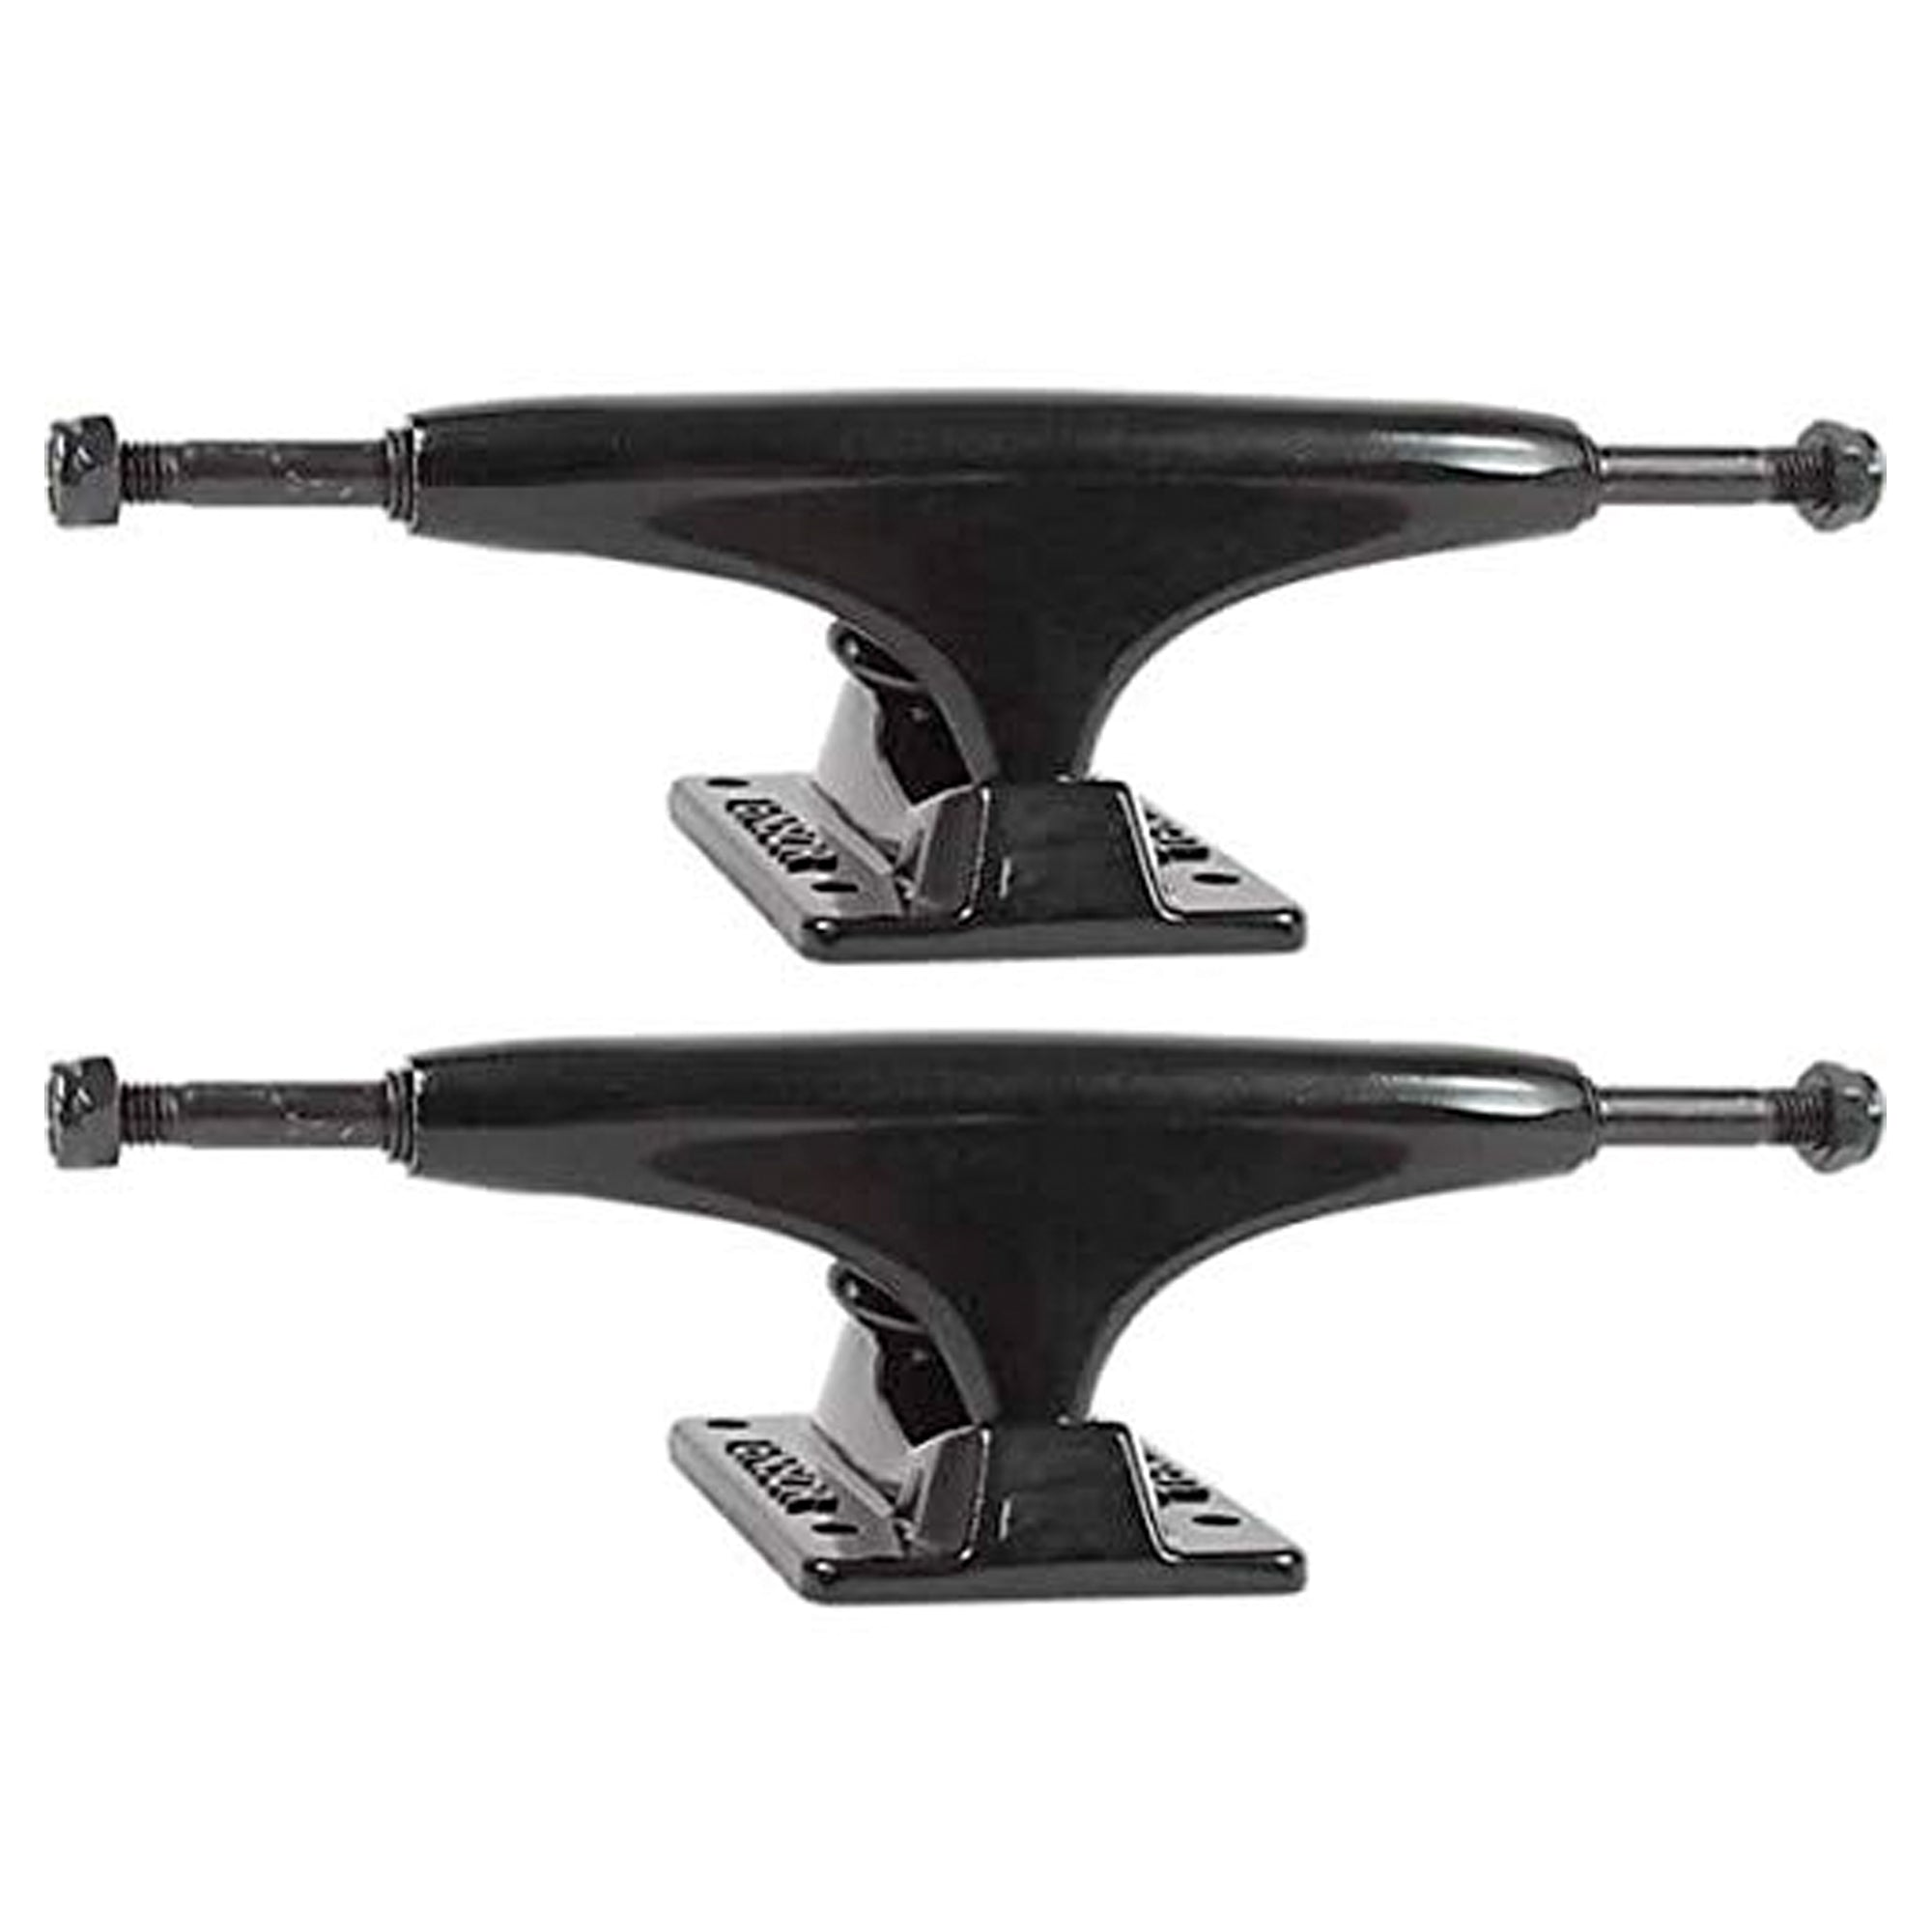 Tensor Regular Alloy 5.5 Trucks - Black/Black